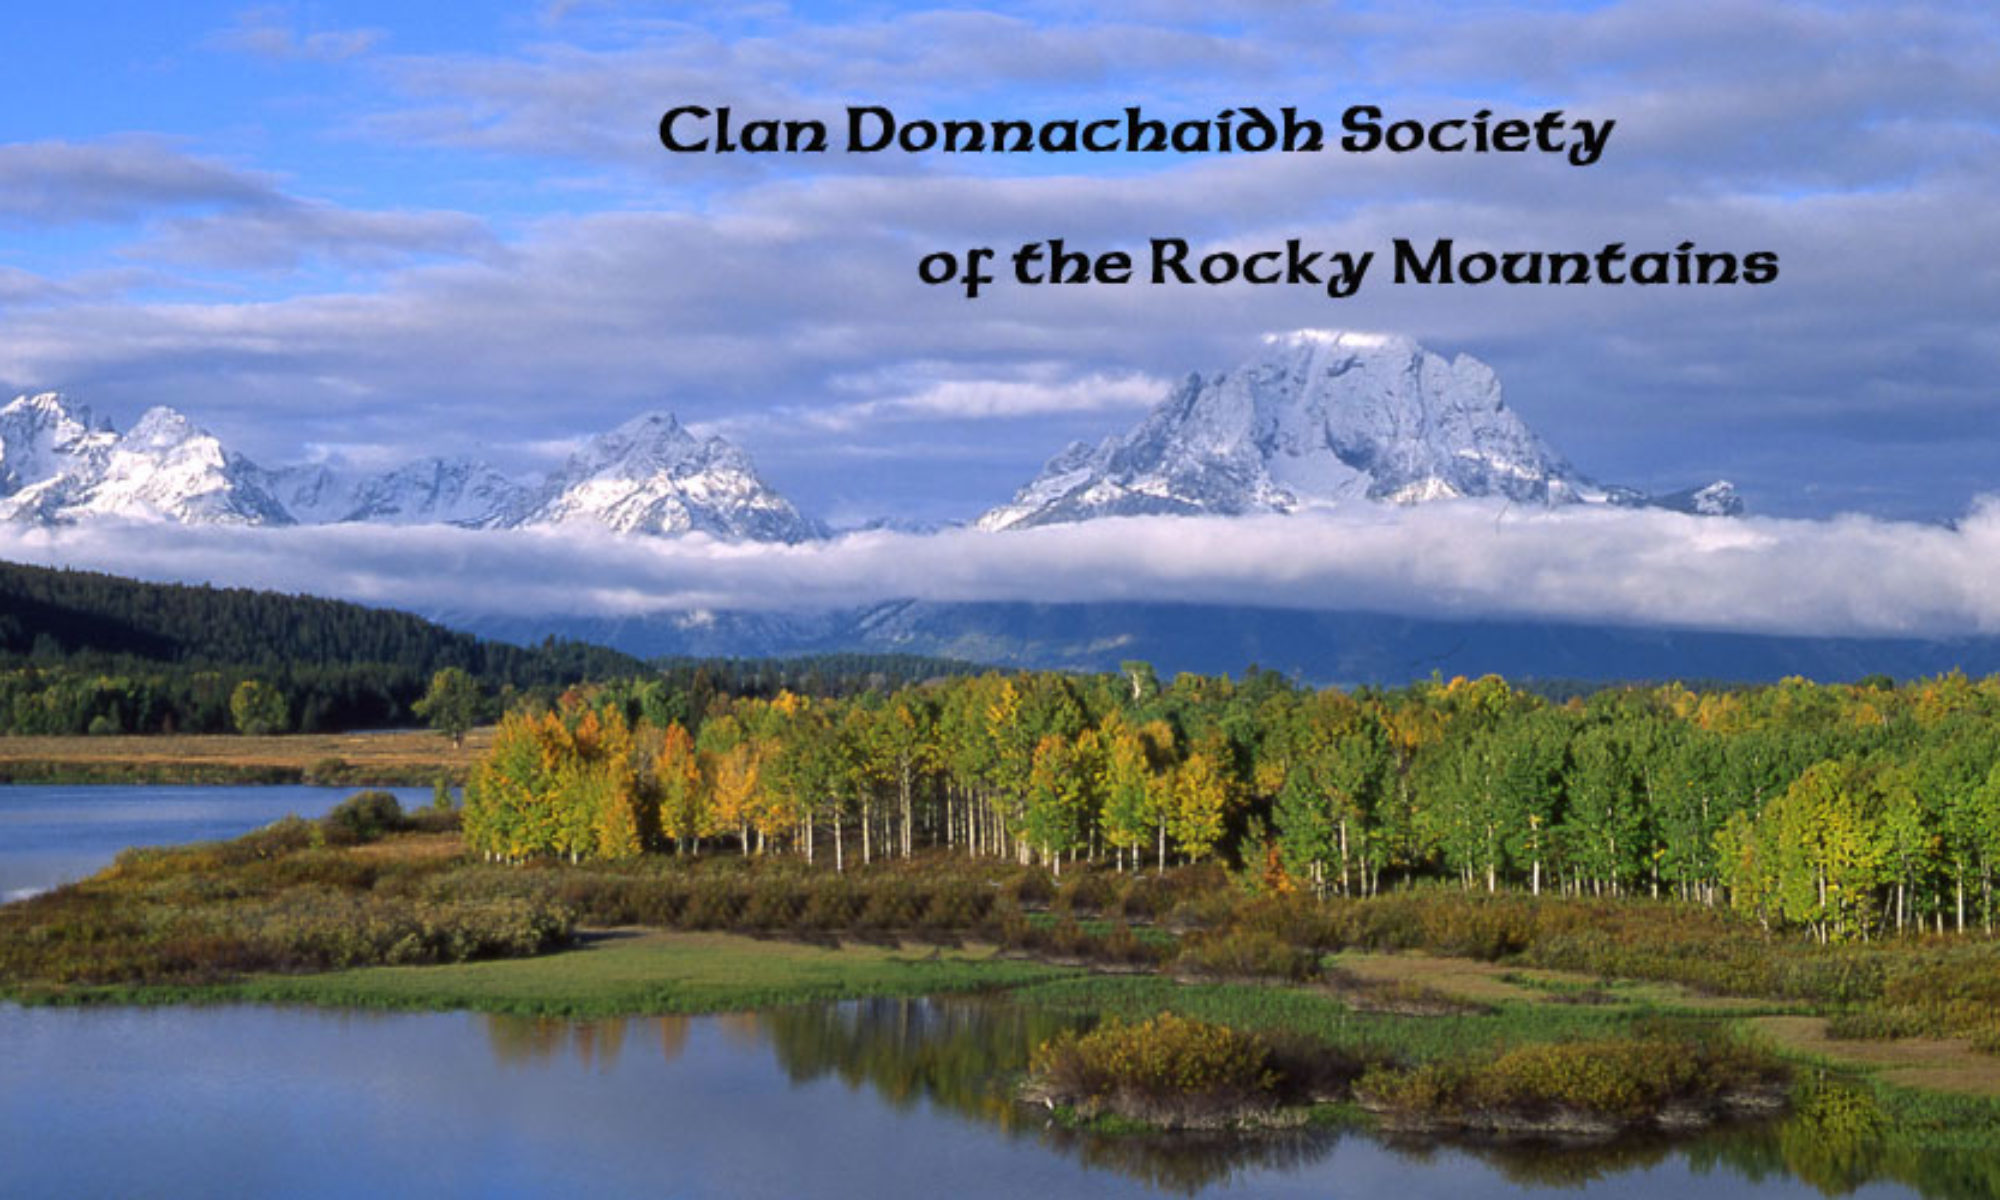 Clan Donnachaidh Society of the Rocky Mountains